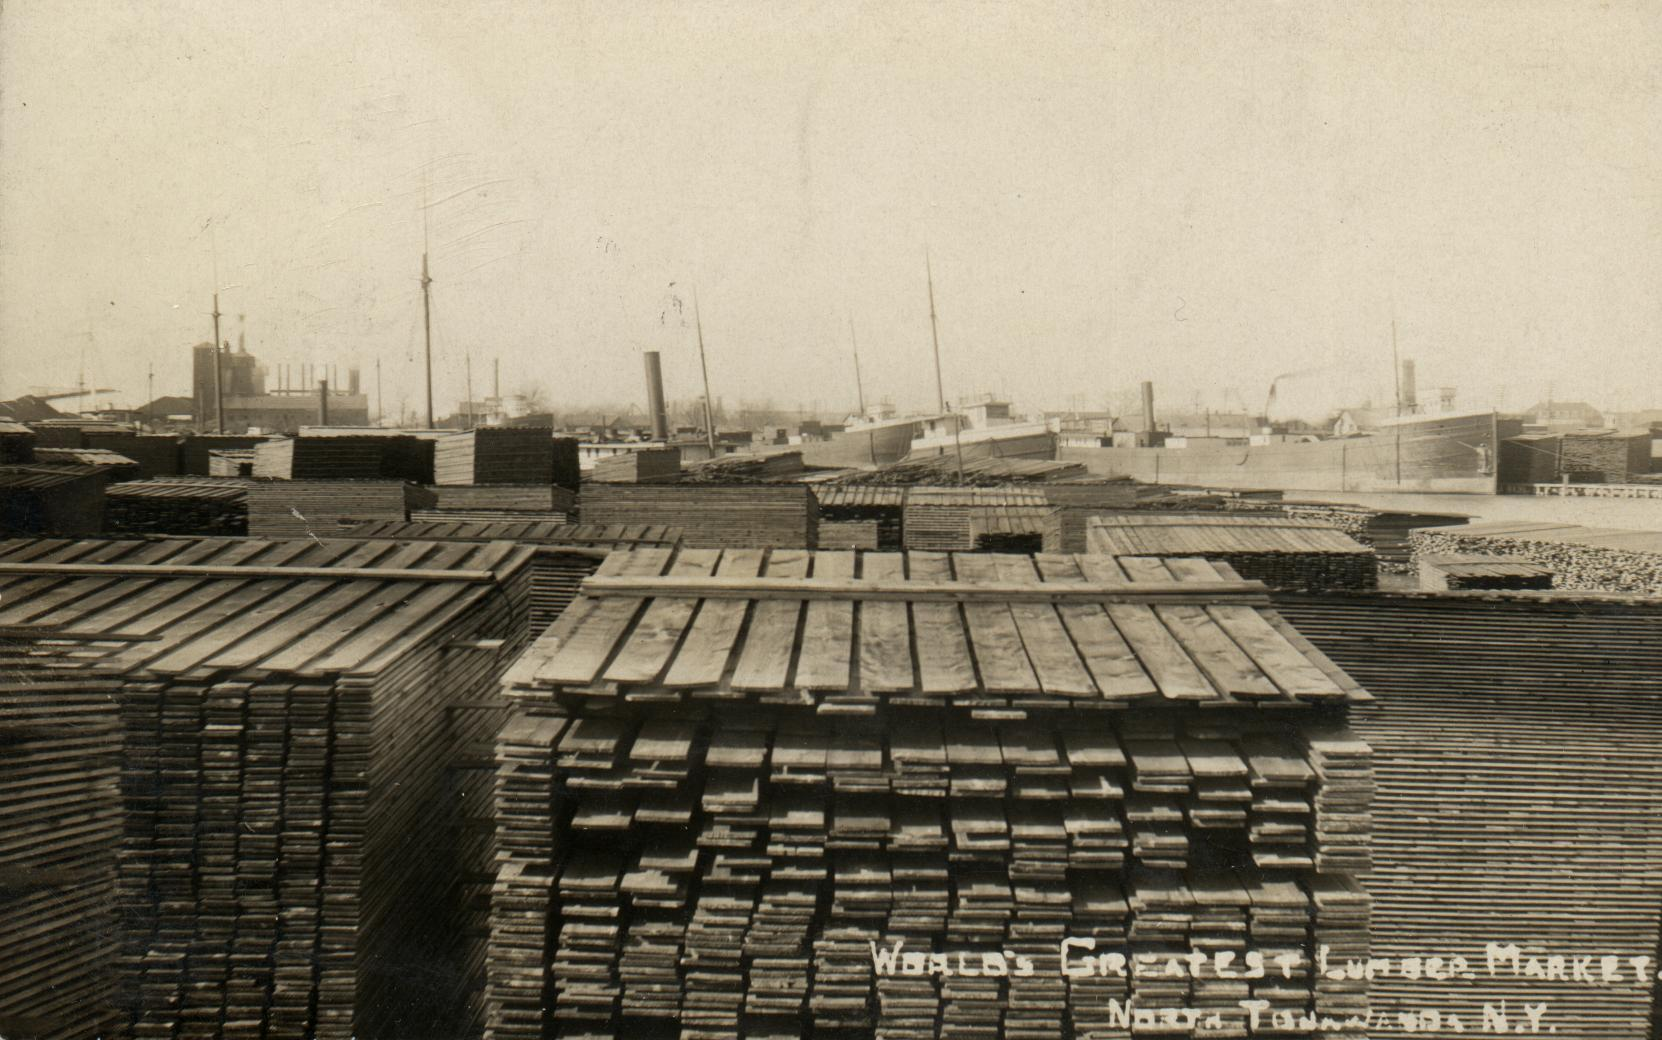 World's Greatest Lumber Market, photo postcard.jpg